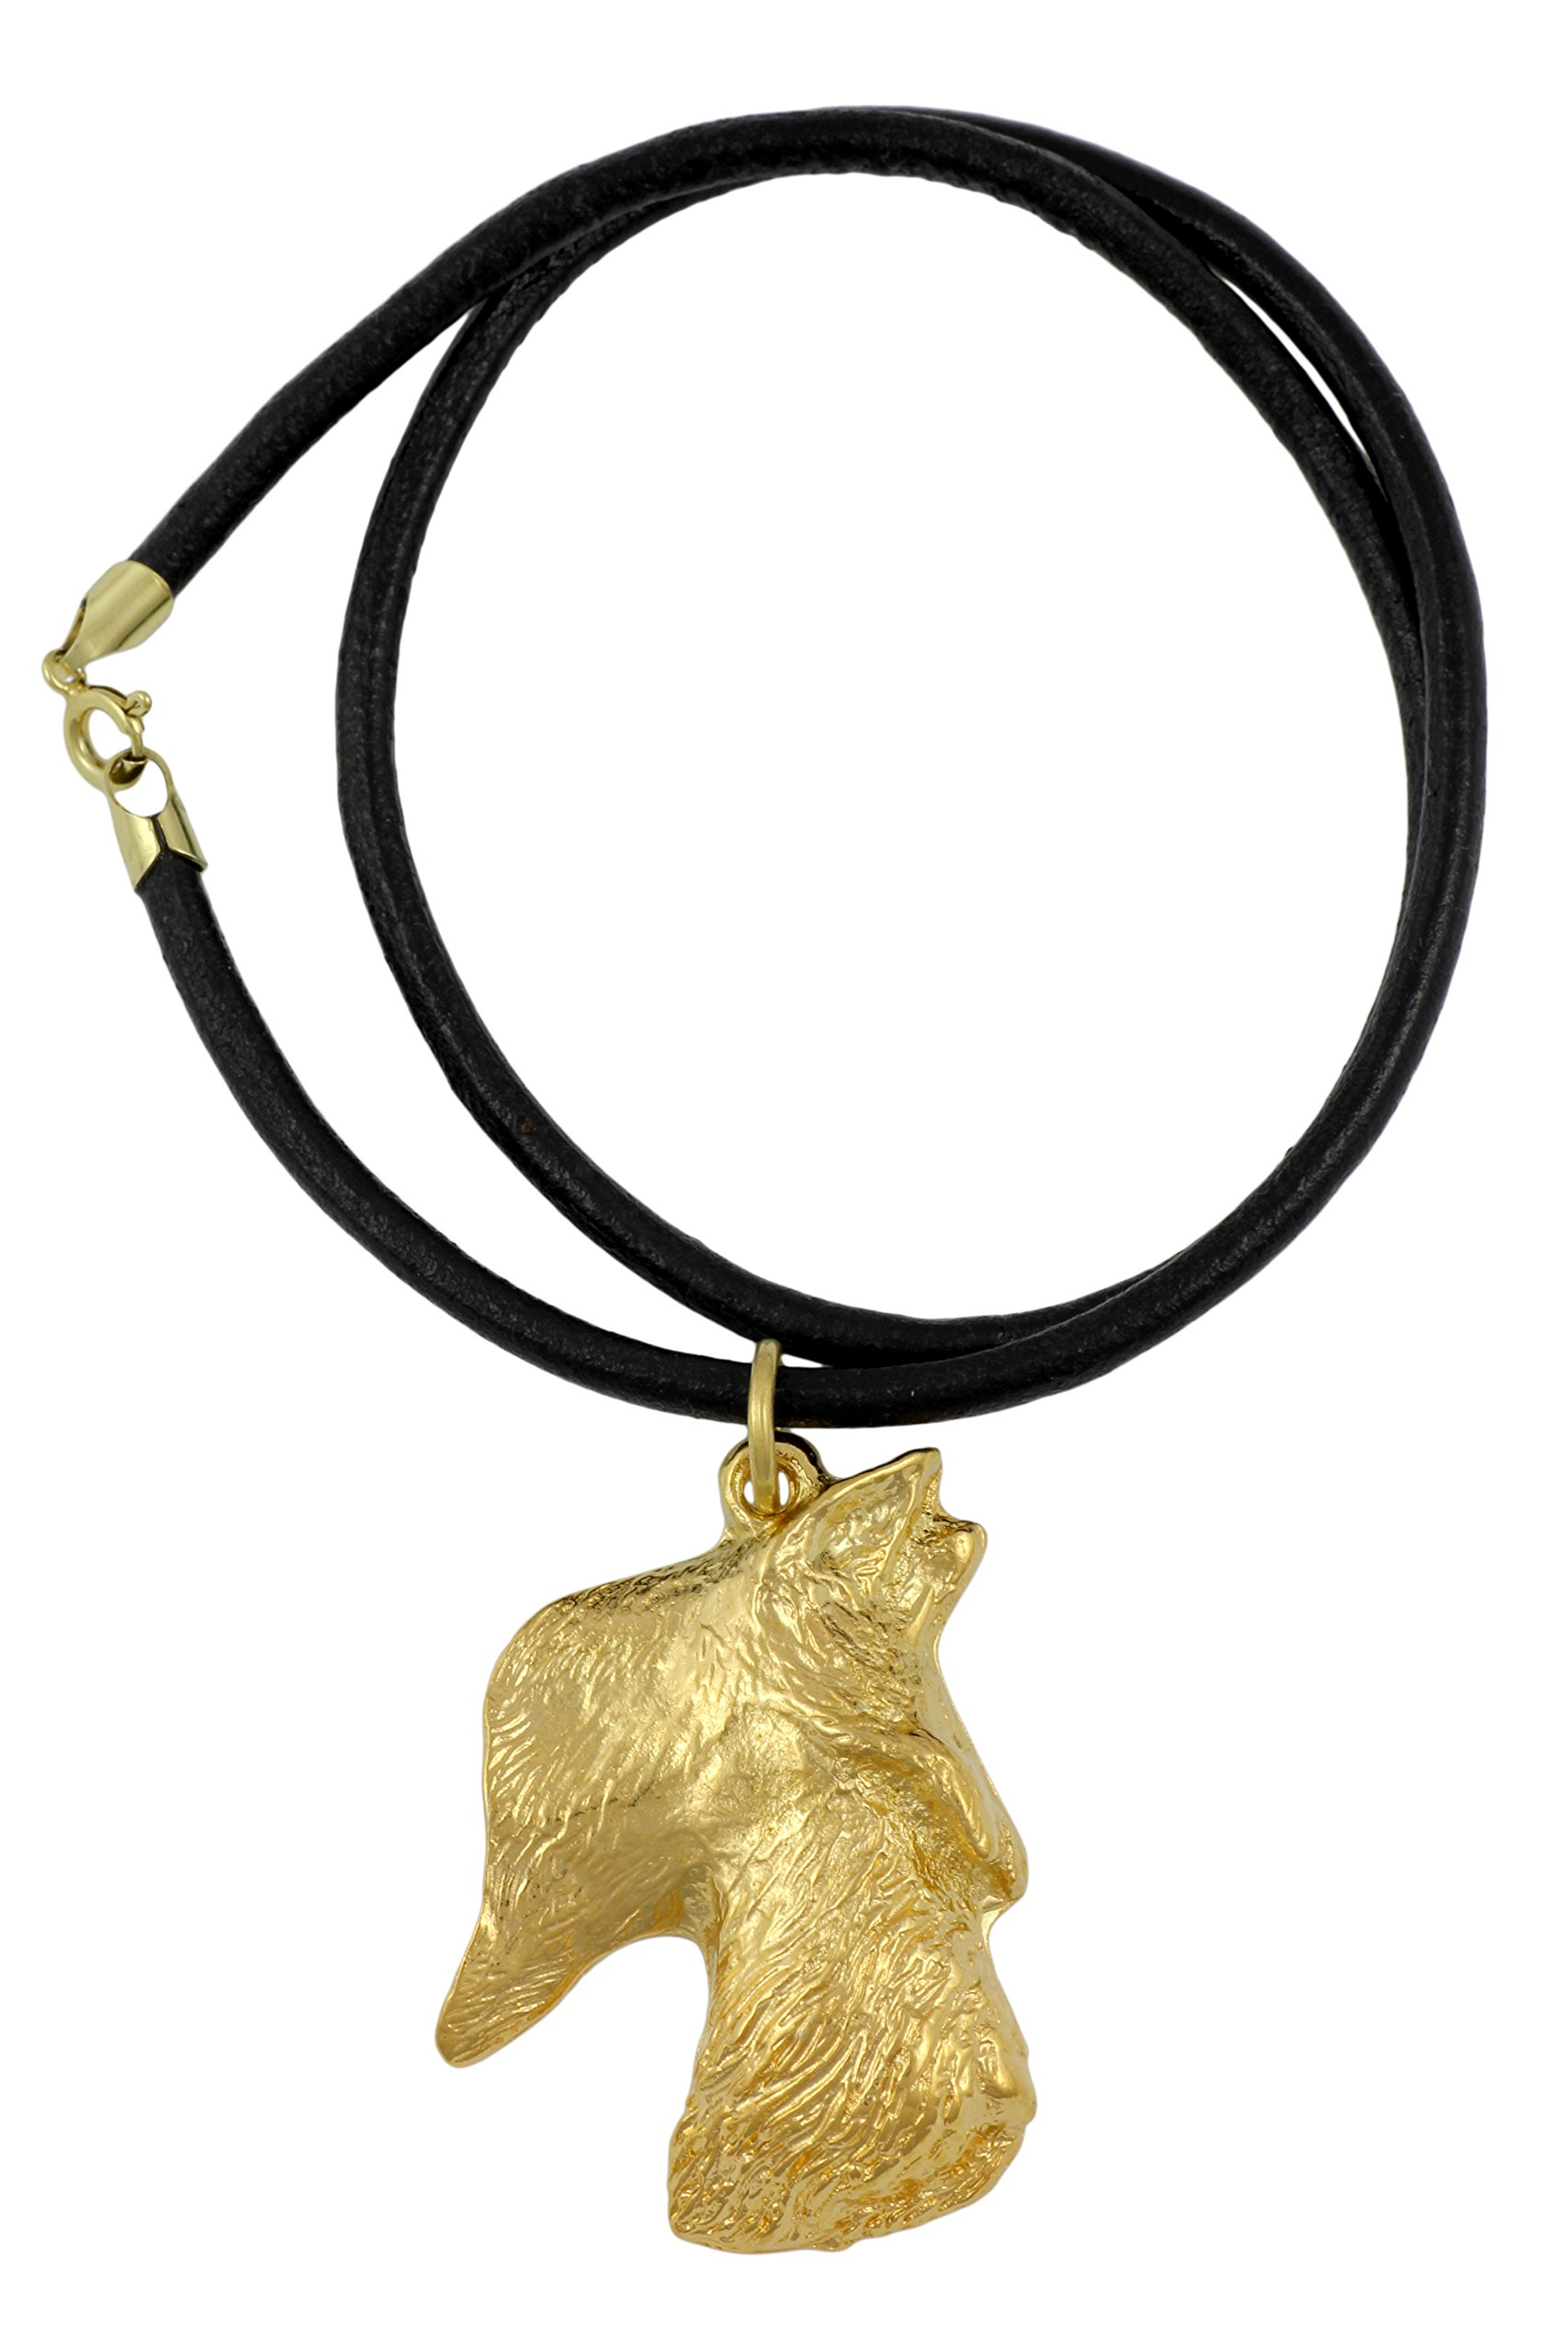 Scottish Terrier (Long Muzzle), Millesimal Fineness 999, Dog Necklaces, Limited Edition, Artdog